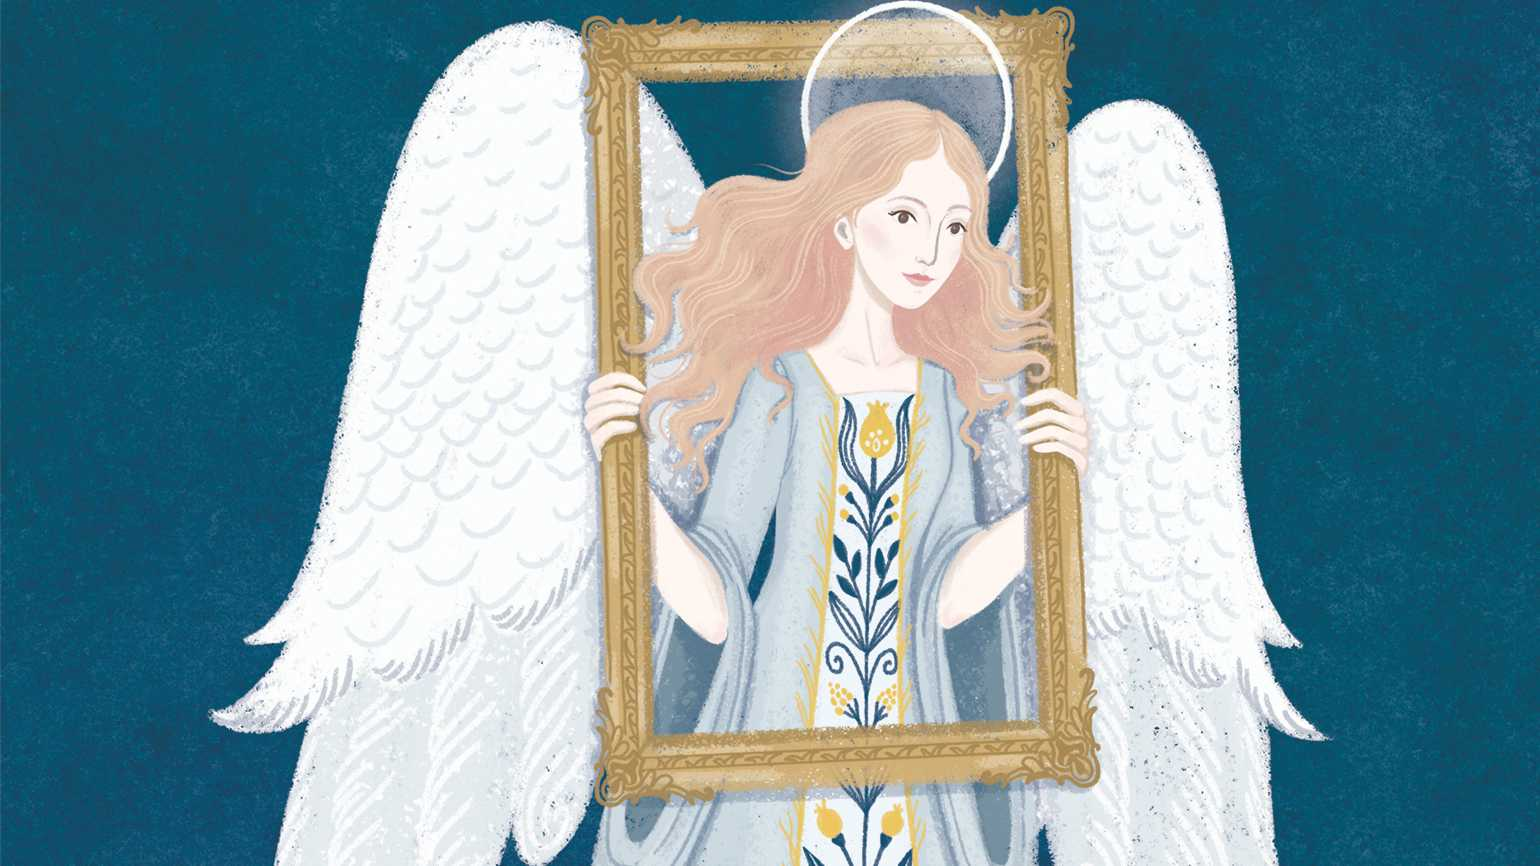 An artist's rednering of an angel peering through a painting frame.